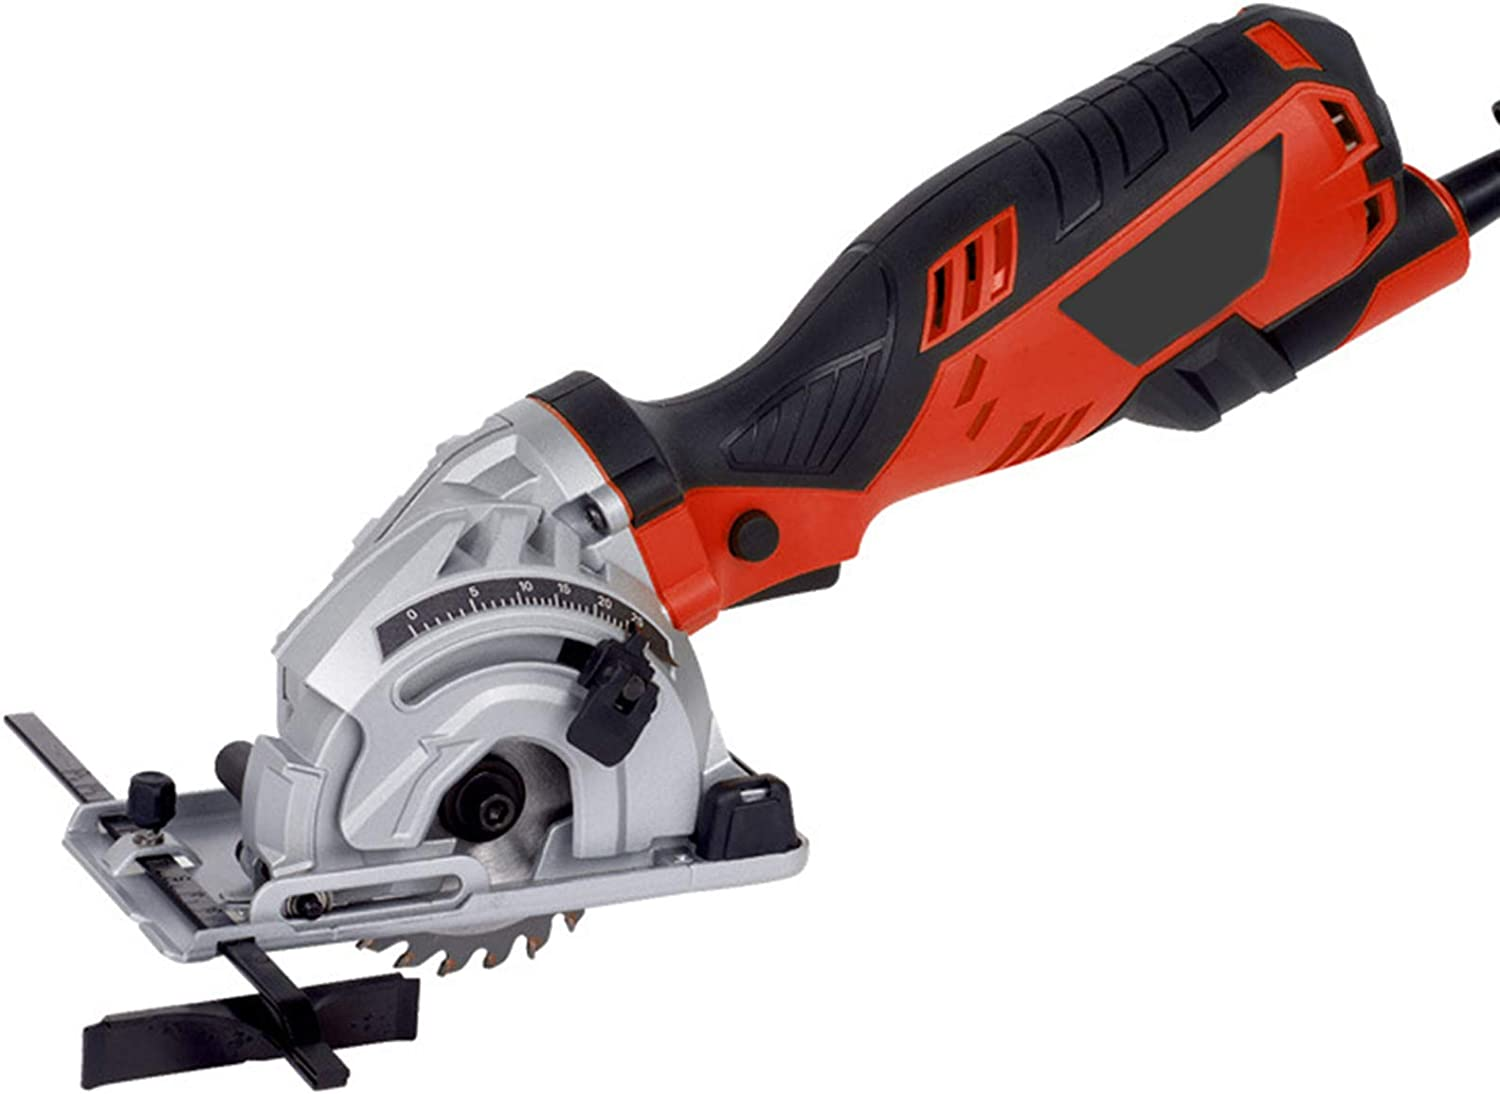 hdbees Compact Circular Saw SEAL Cheap bargain limited product 220V with Laser Guide